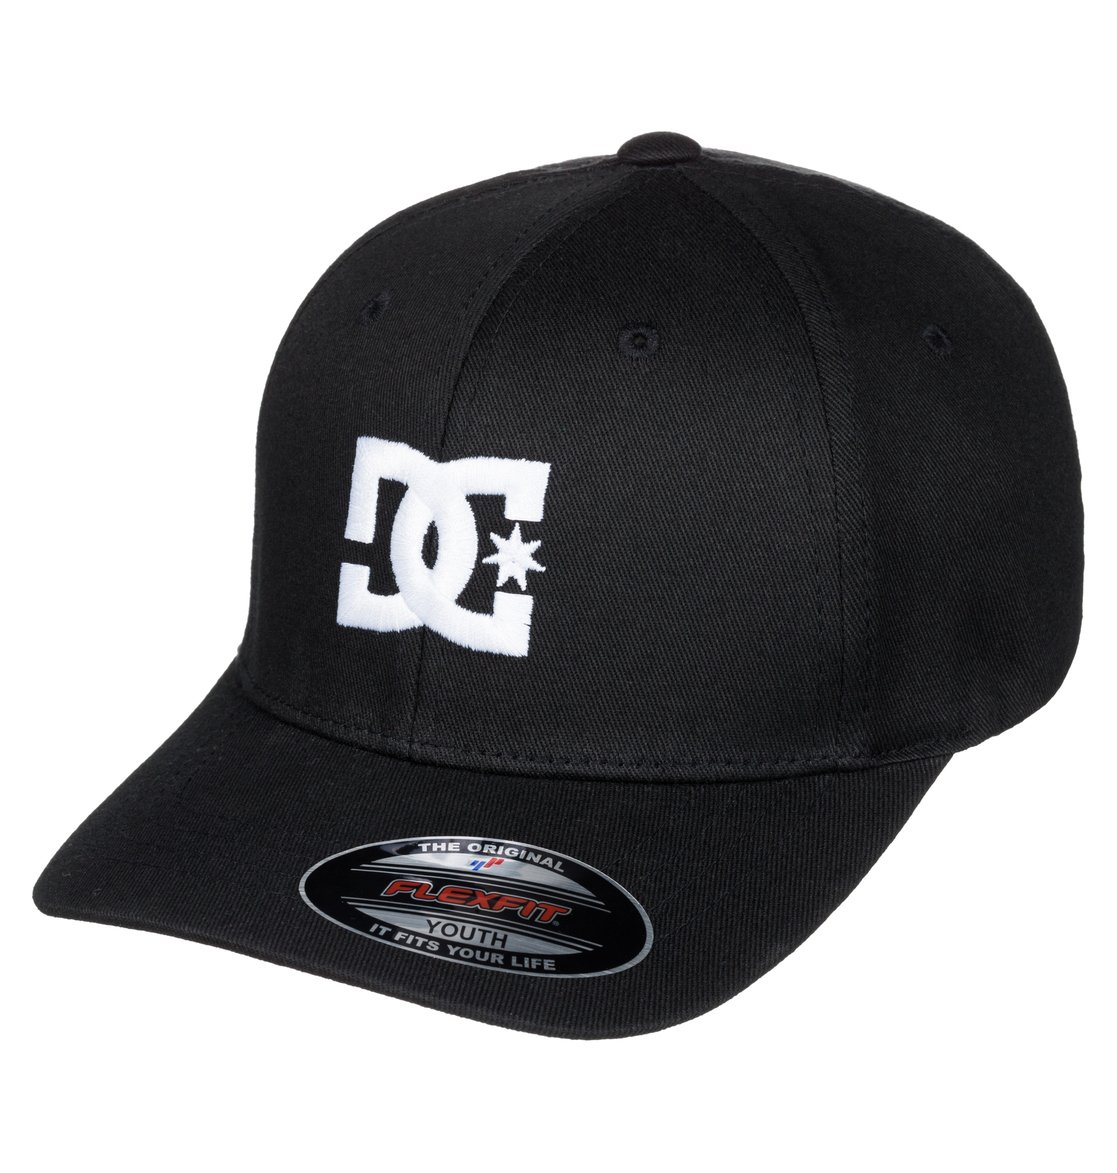 0 Cap Star 2 - Gorra Flexfit para Chicos 8-16 ADBHA03026 DC Shoes f5e29900ece